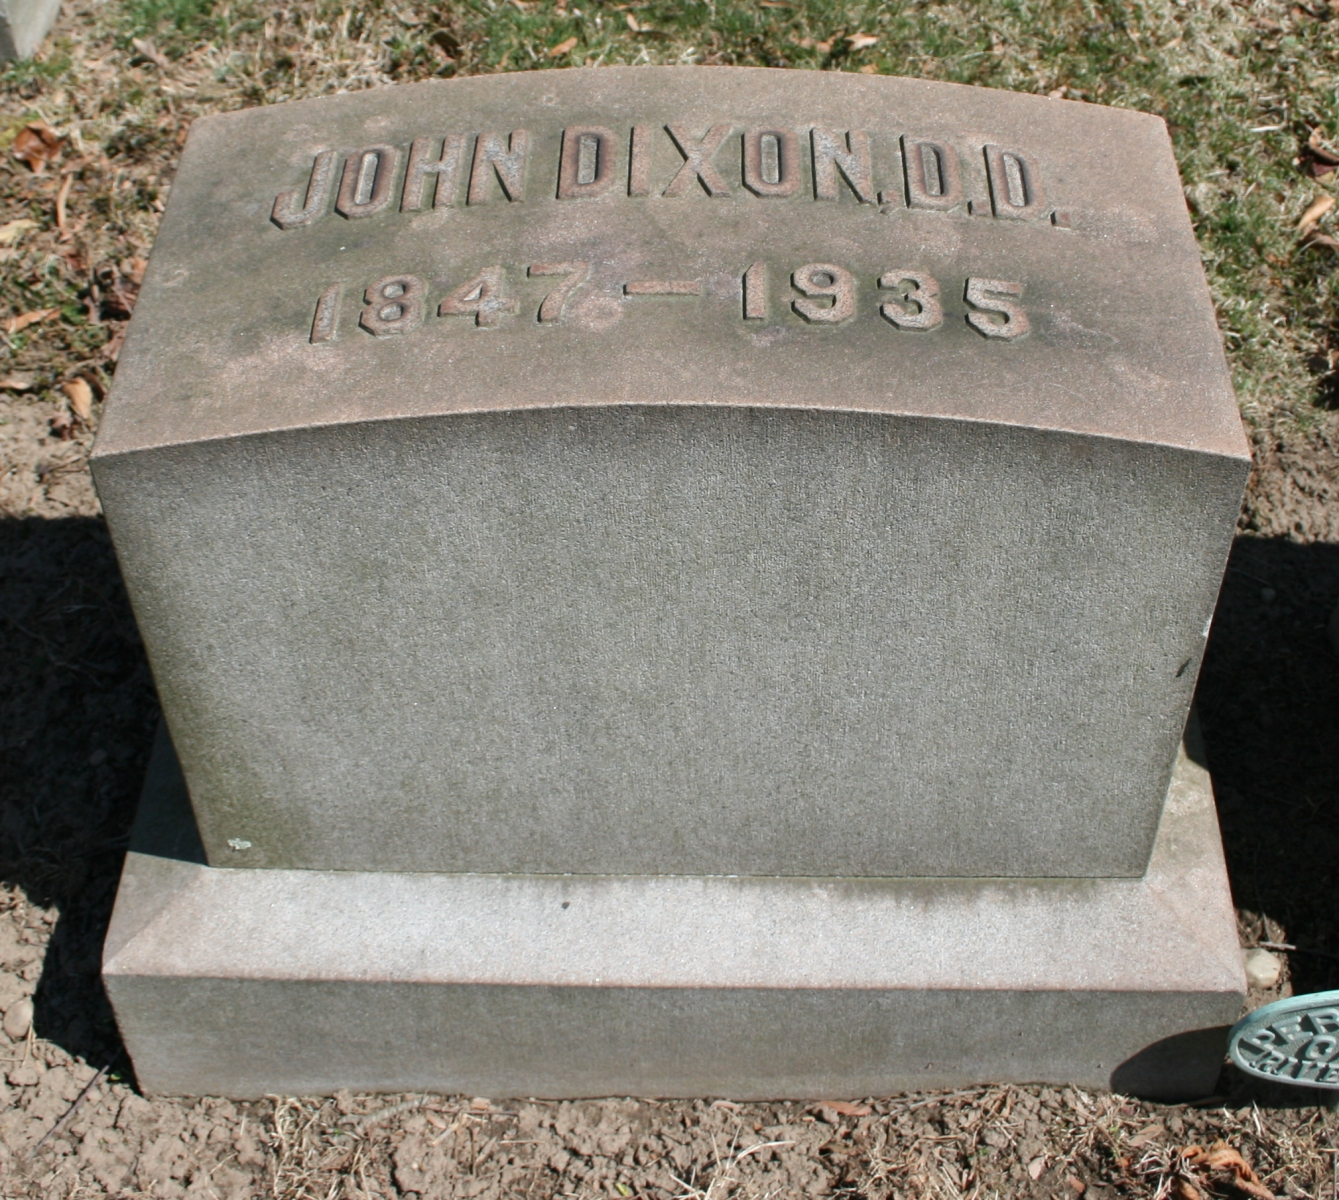 John Dixon is buried at Riverview Cemetery, Trenton, New Jersey.